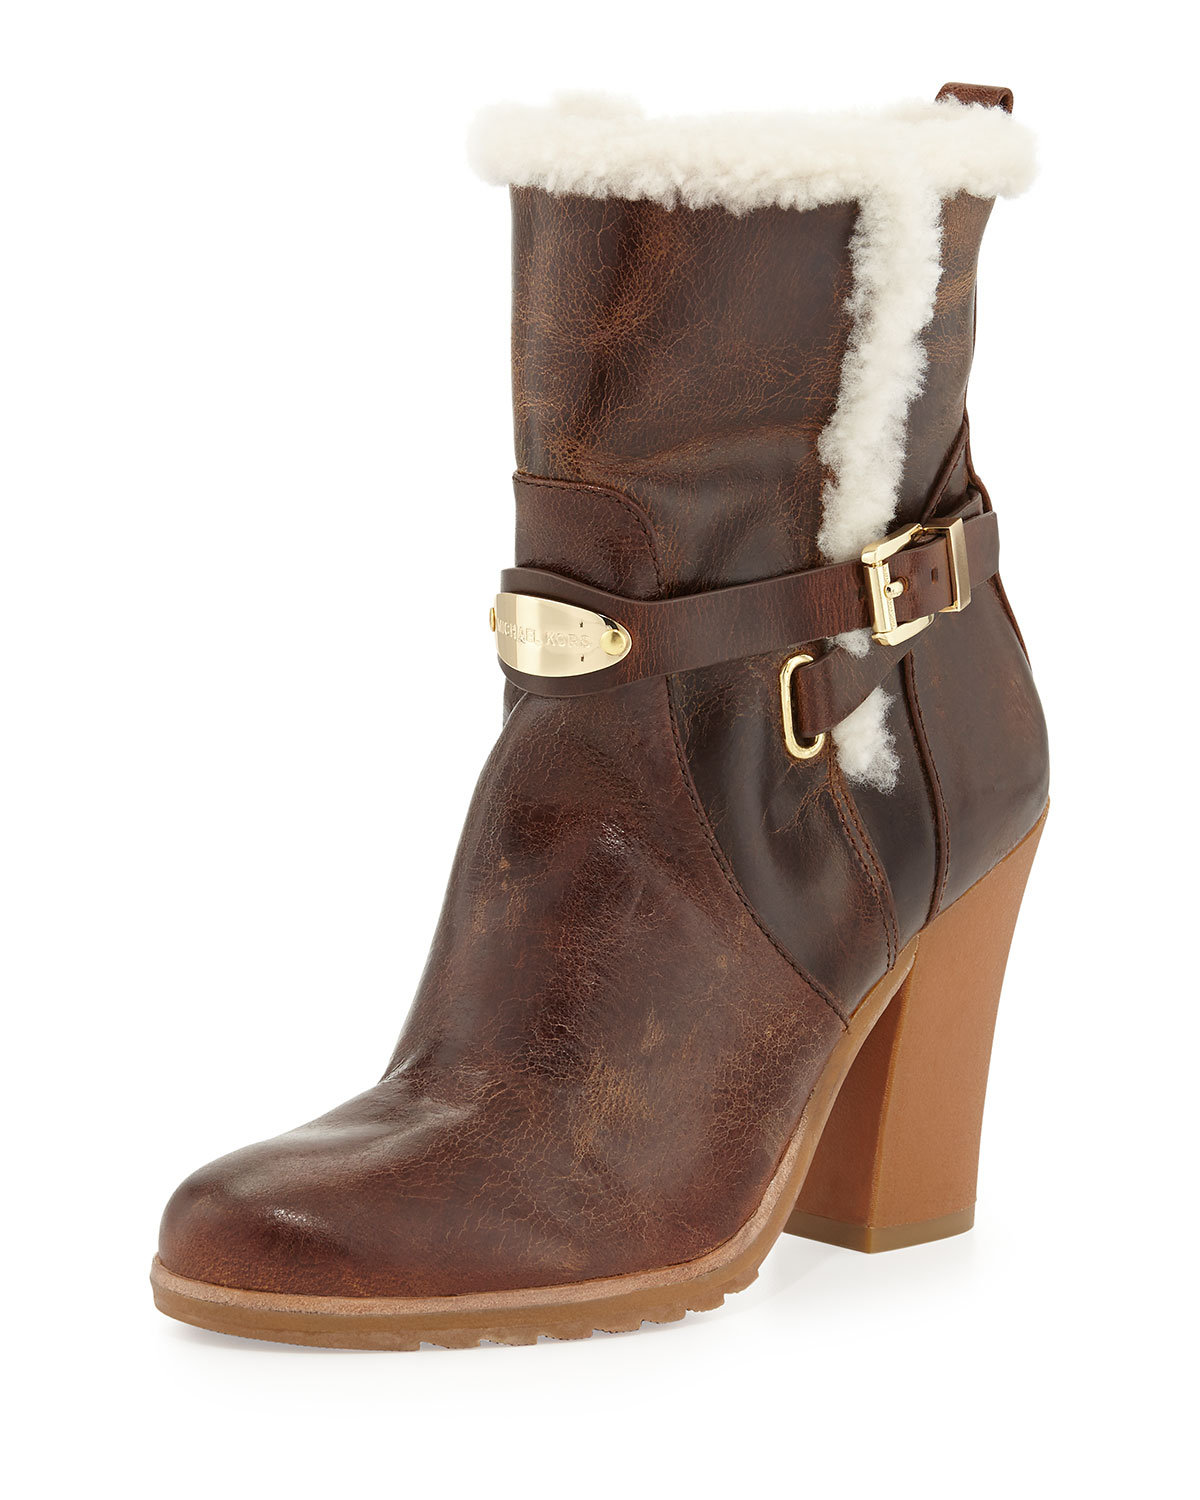 Michael michael kors Lizzie Fur-Lined Ankle Boot in Brown | Lyst